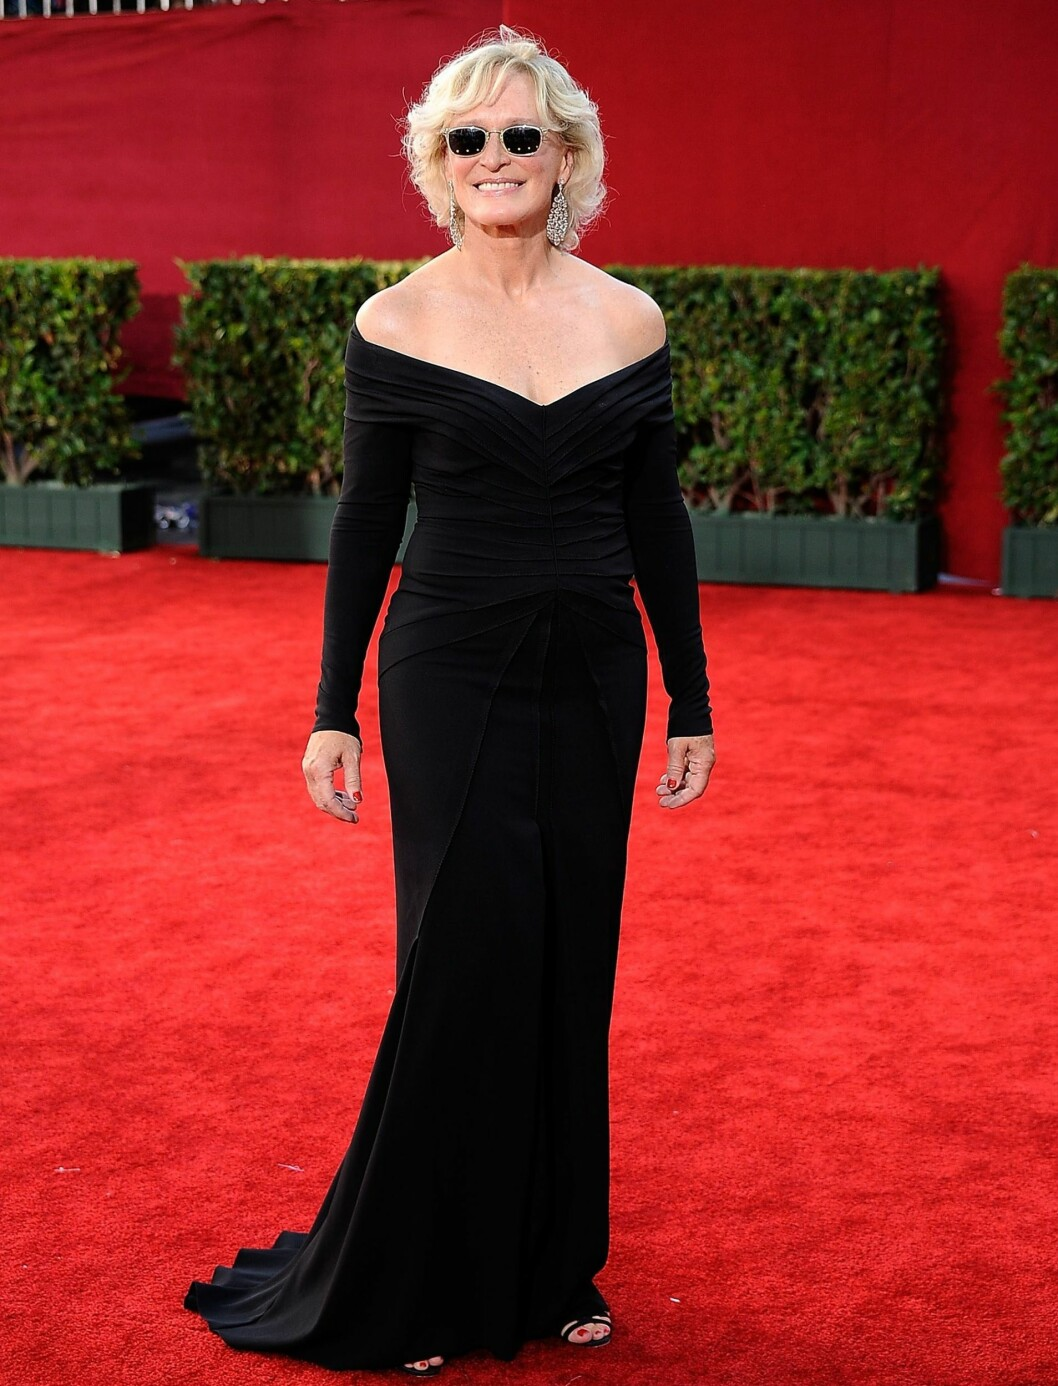 Glenn Close i en kjole fra Zac Posen med utfordrende snitt. Foto: All Over Press